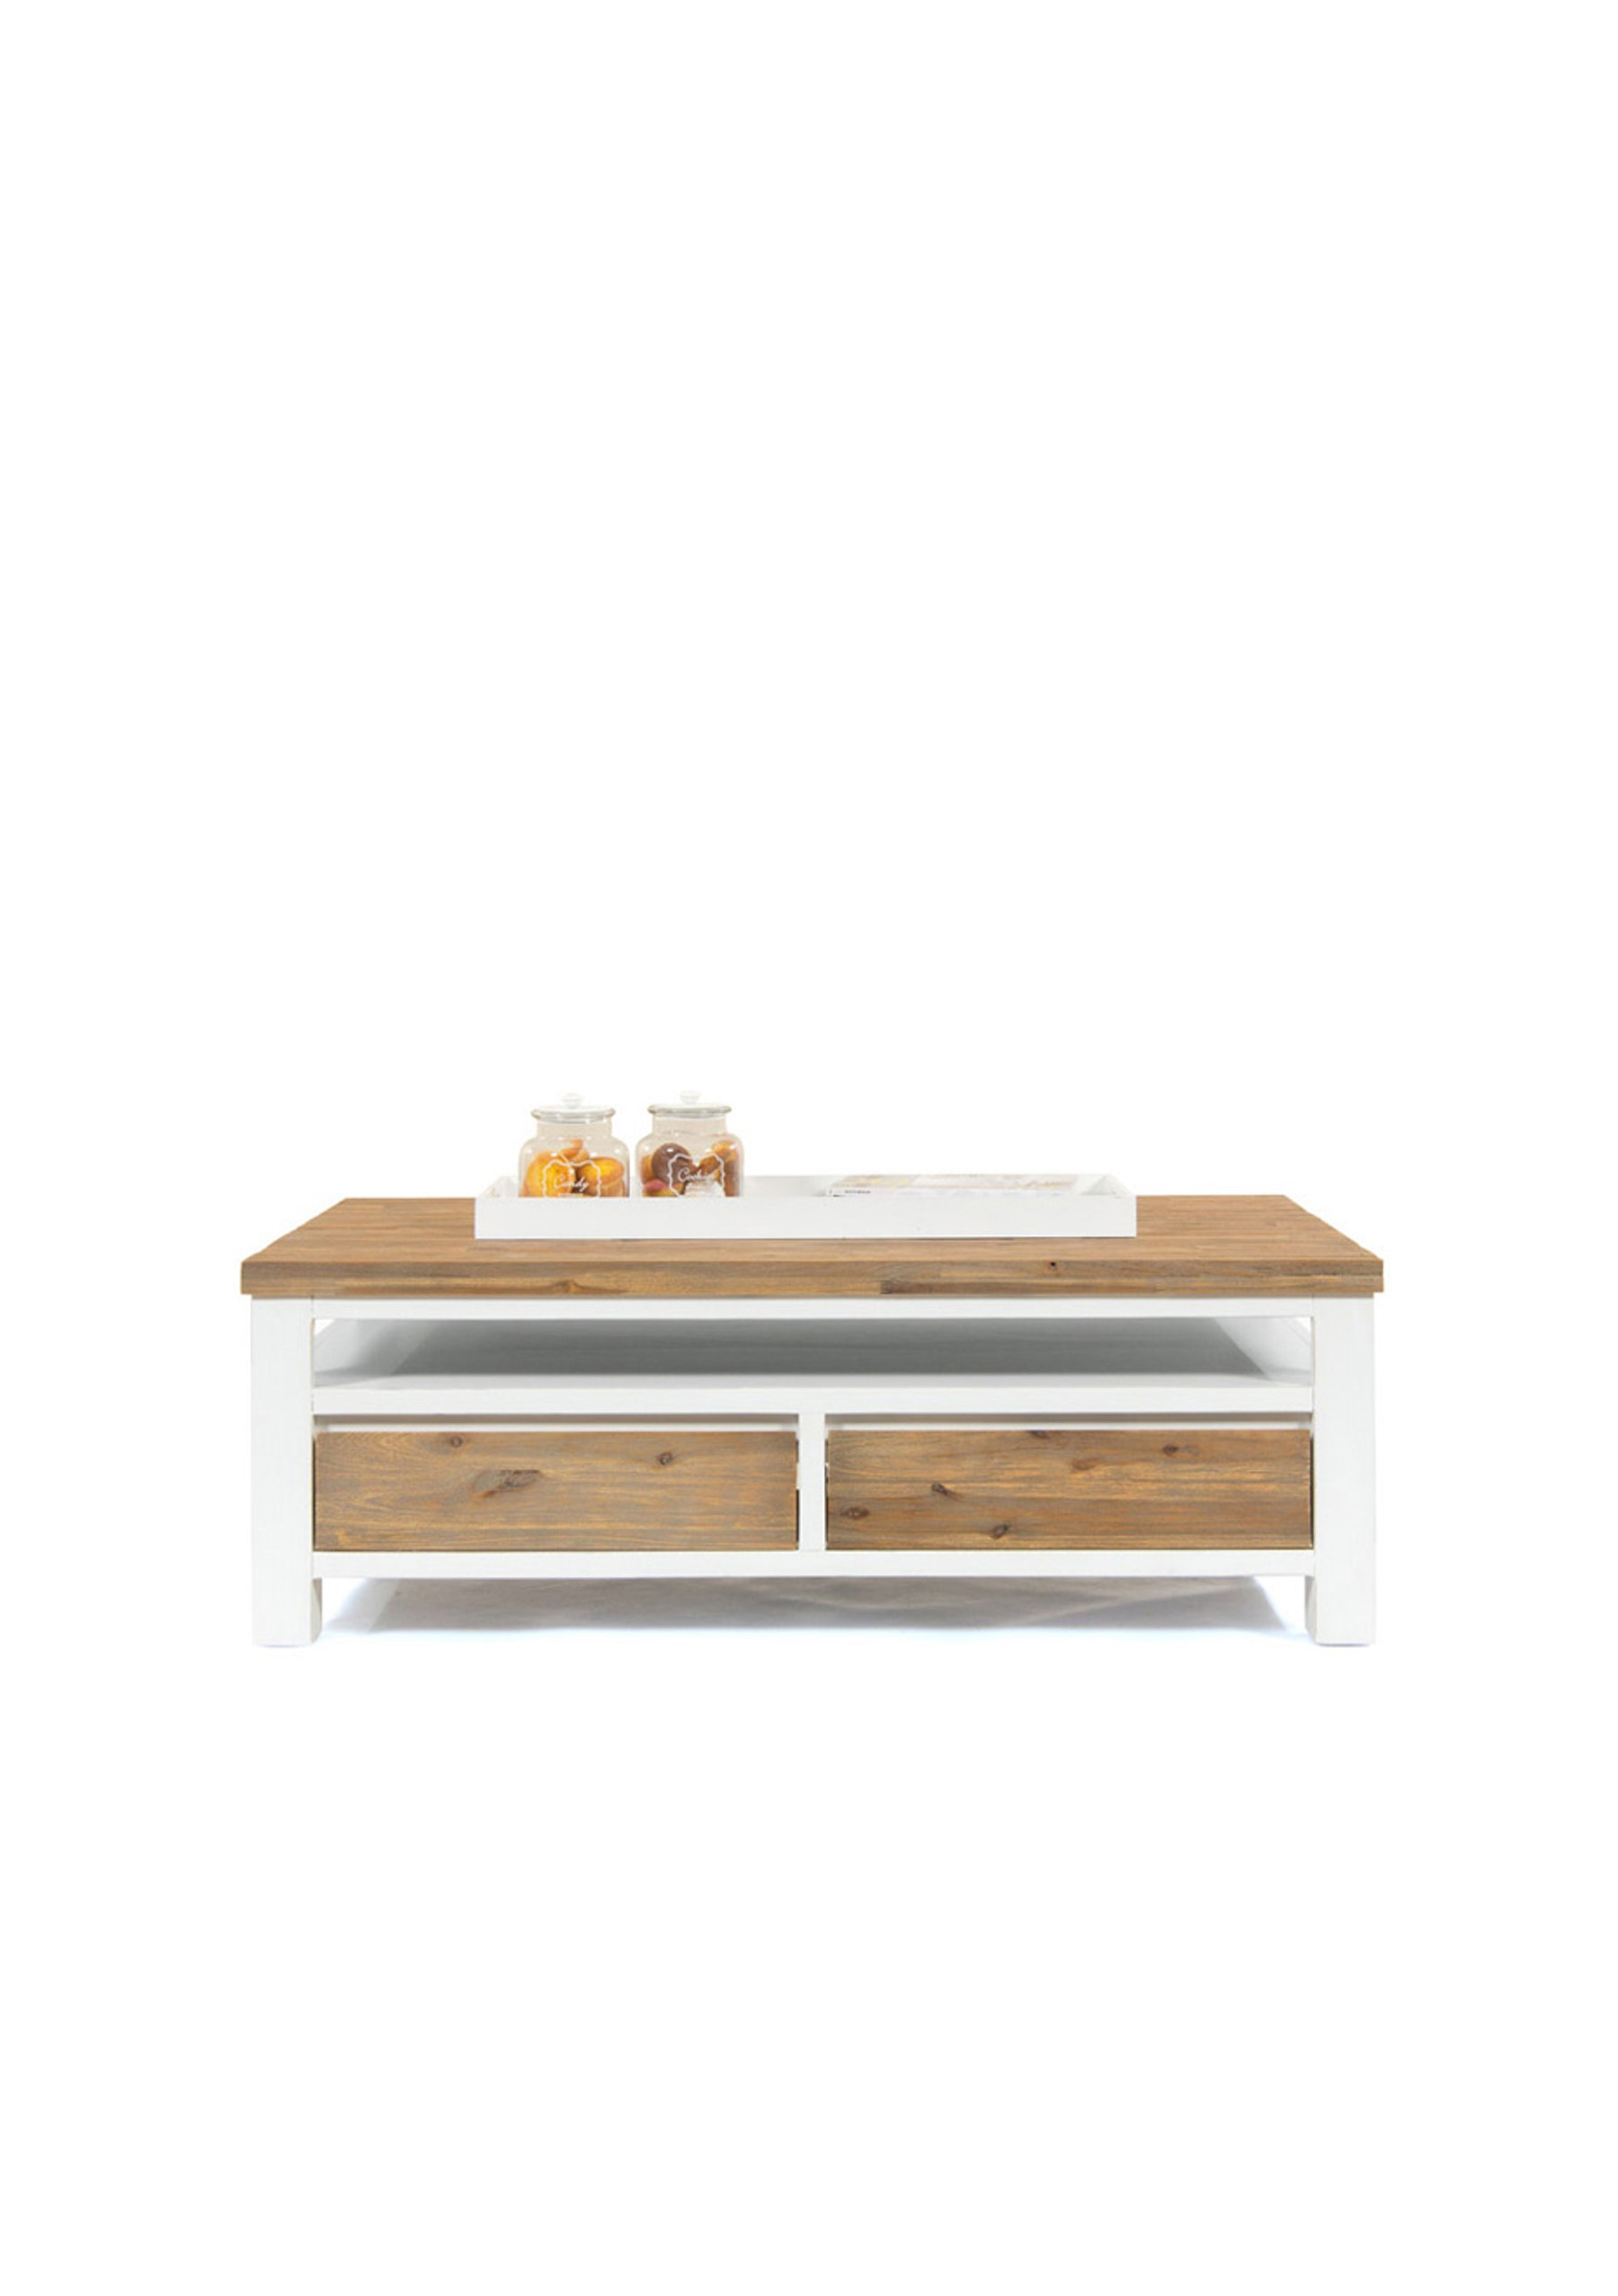 FbD Urban Coffee Table White and Acacia Furniture by Design